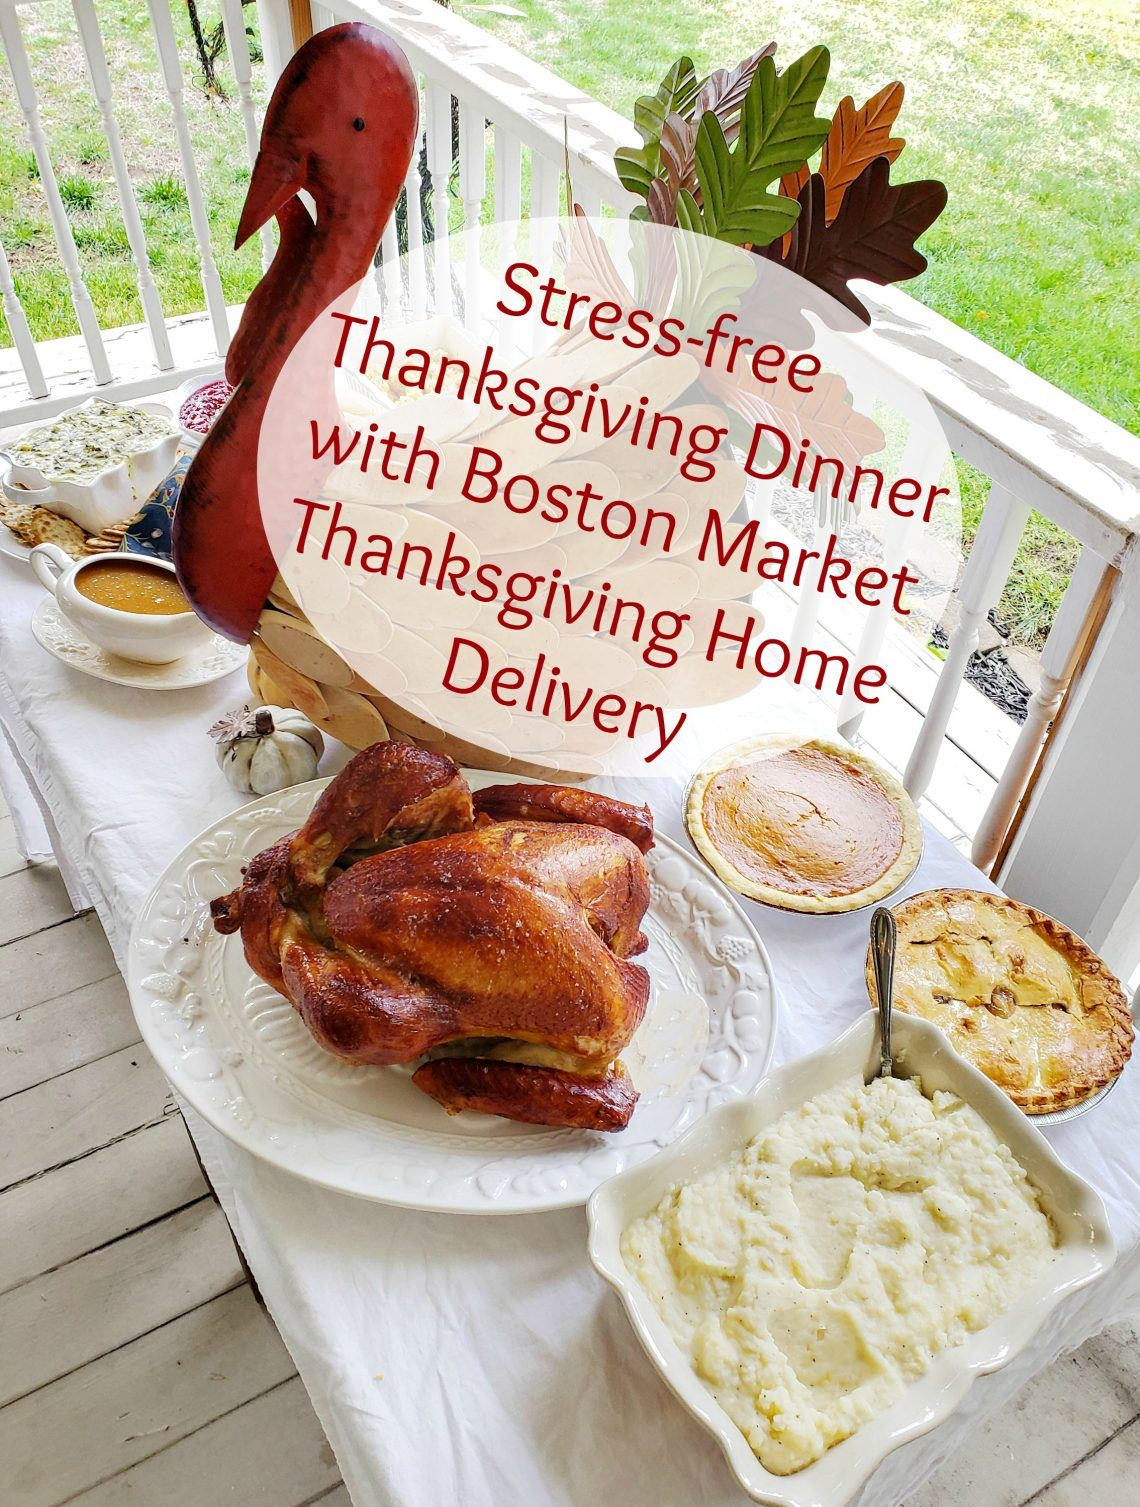 Stressfree Thanksgiving Dinner with Boston Market